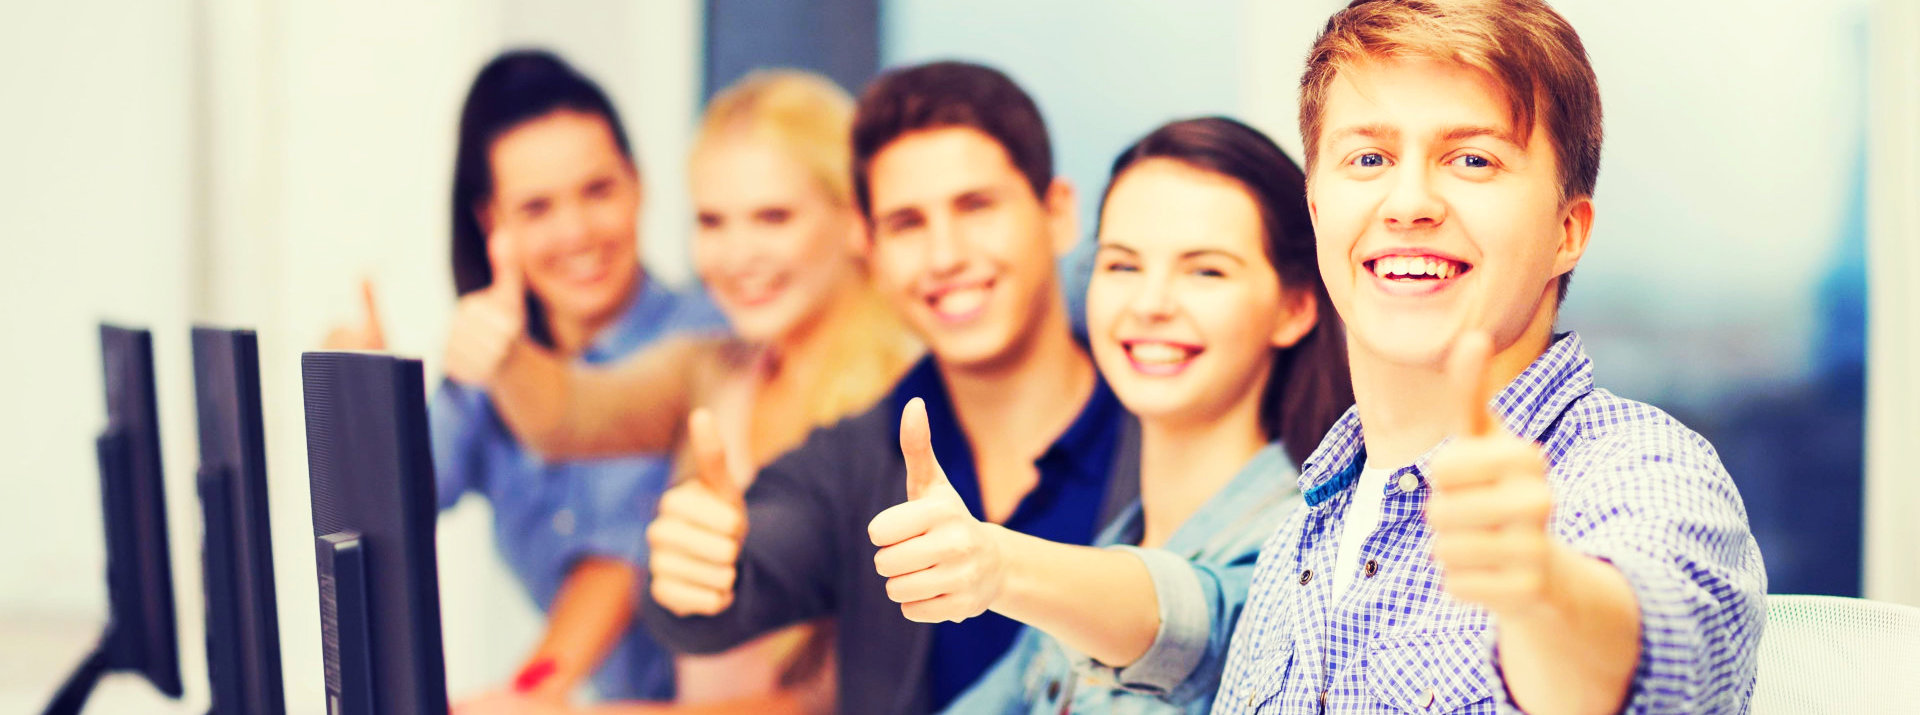 group of young people giving thumbs up